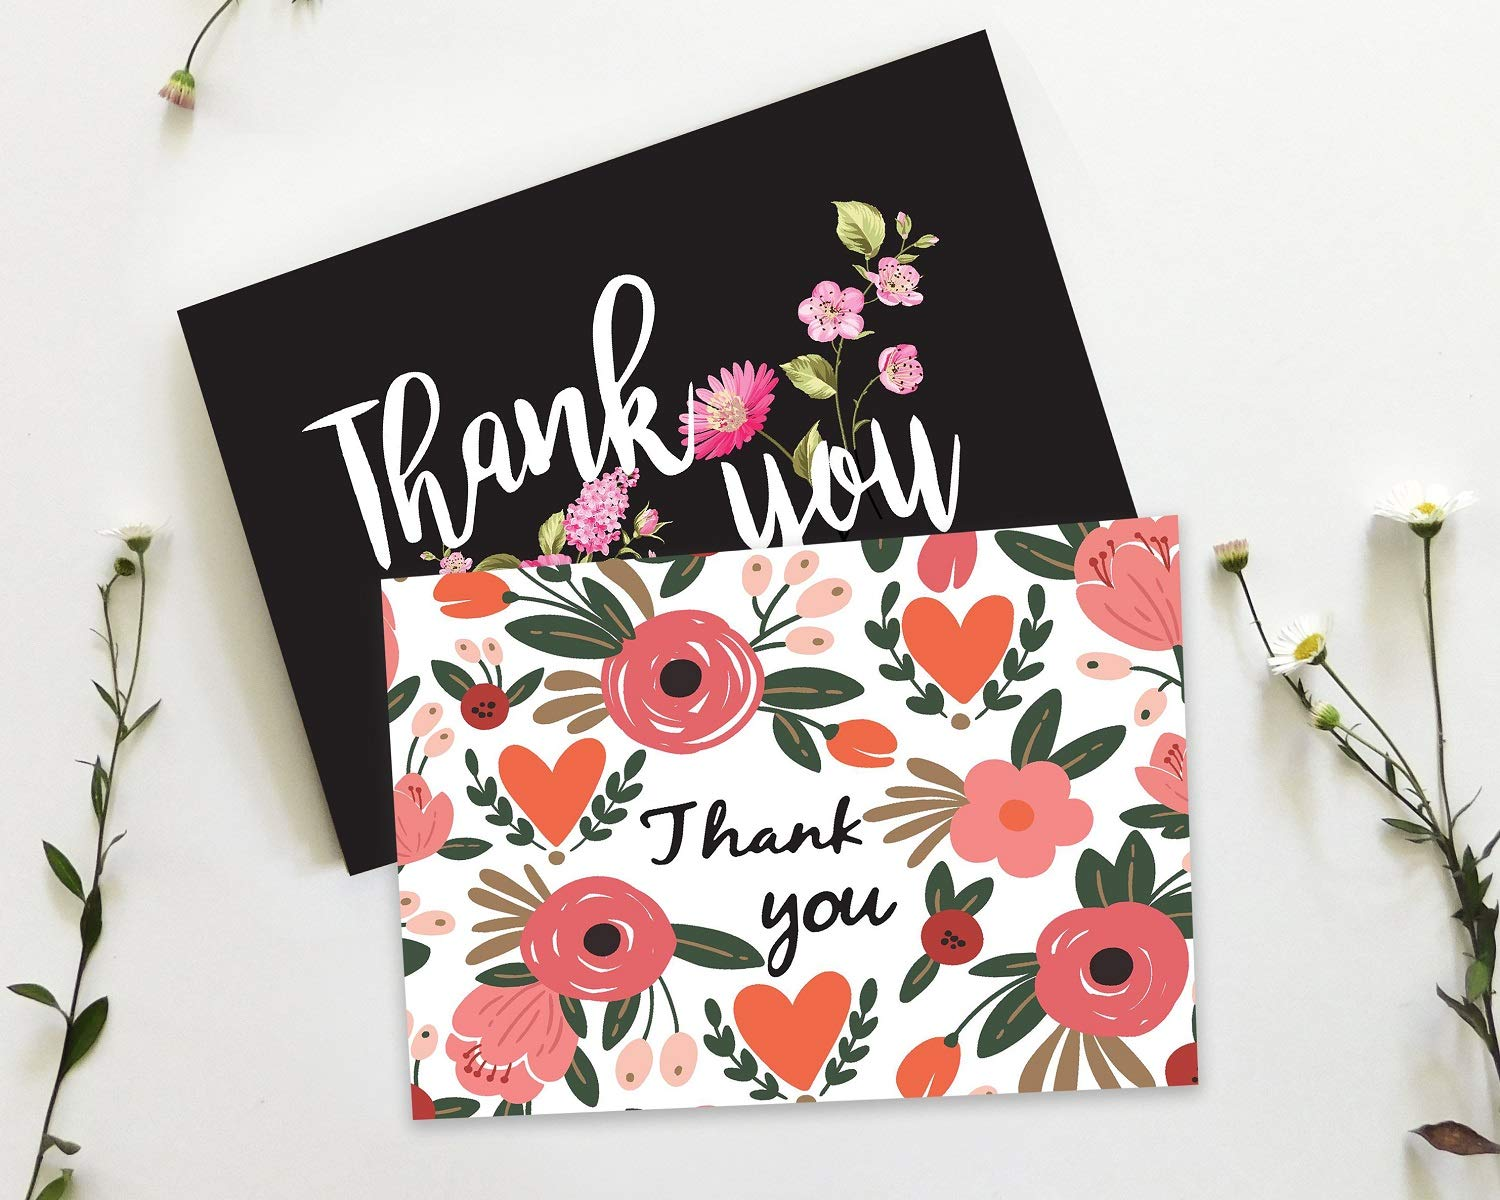 48 Thank You Cards Floral Flower Greeting Cards with Envelopes Summer Time Thank U Note Card for Baby Shower, Wedding, Bridal Shower, Business - Assorted Bulk Pack Blank Inside 4 x 6 inches